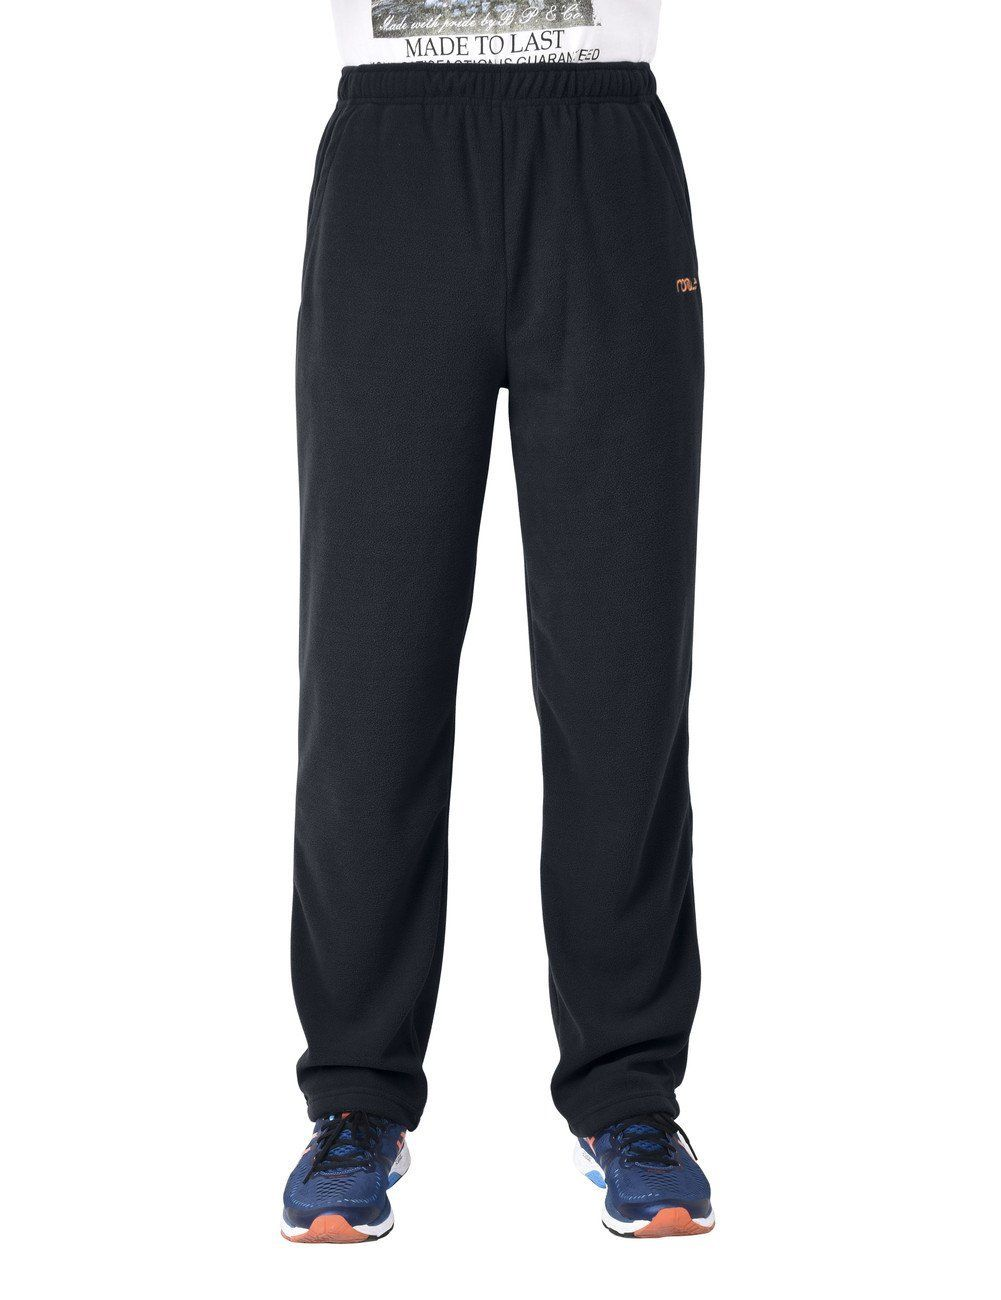 Nonwe Men's Fleece Outdoor Hiking Snow Pants * Be sure to check out this awesome product.